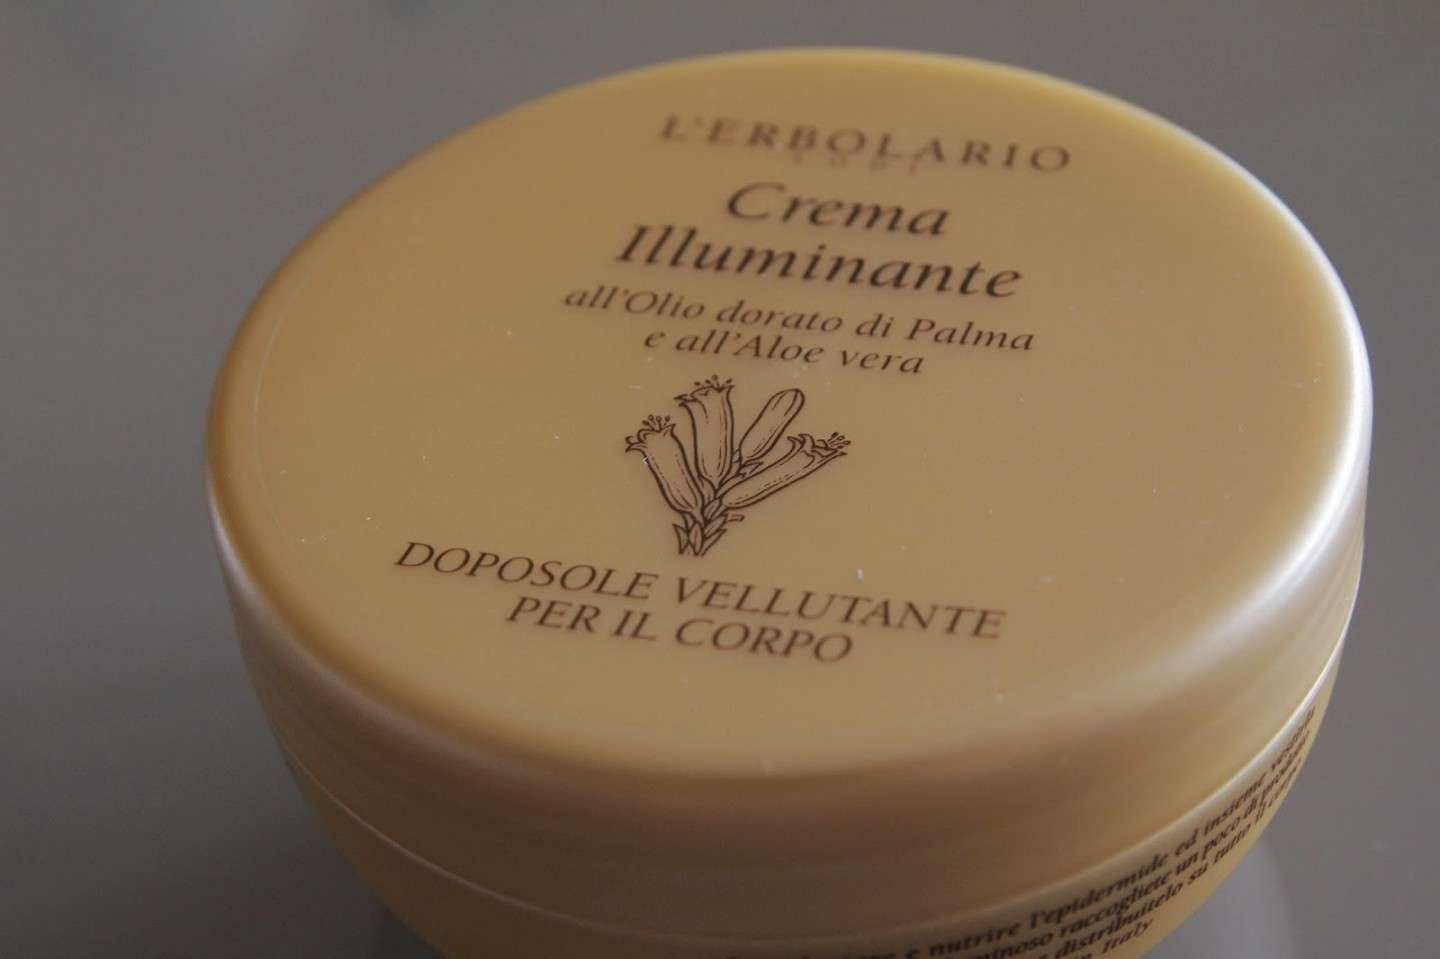 Crema illuminate doposole